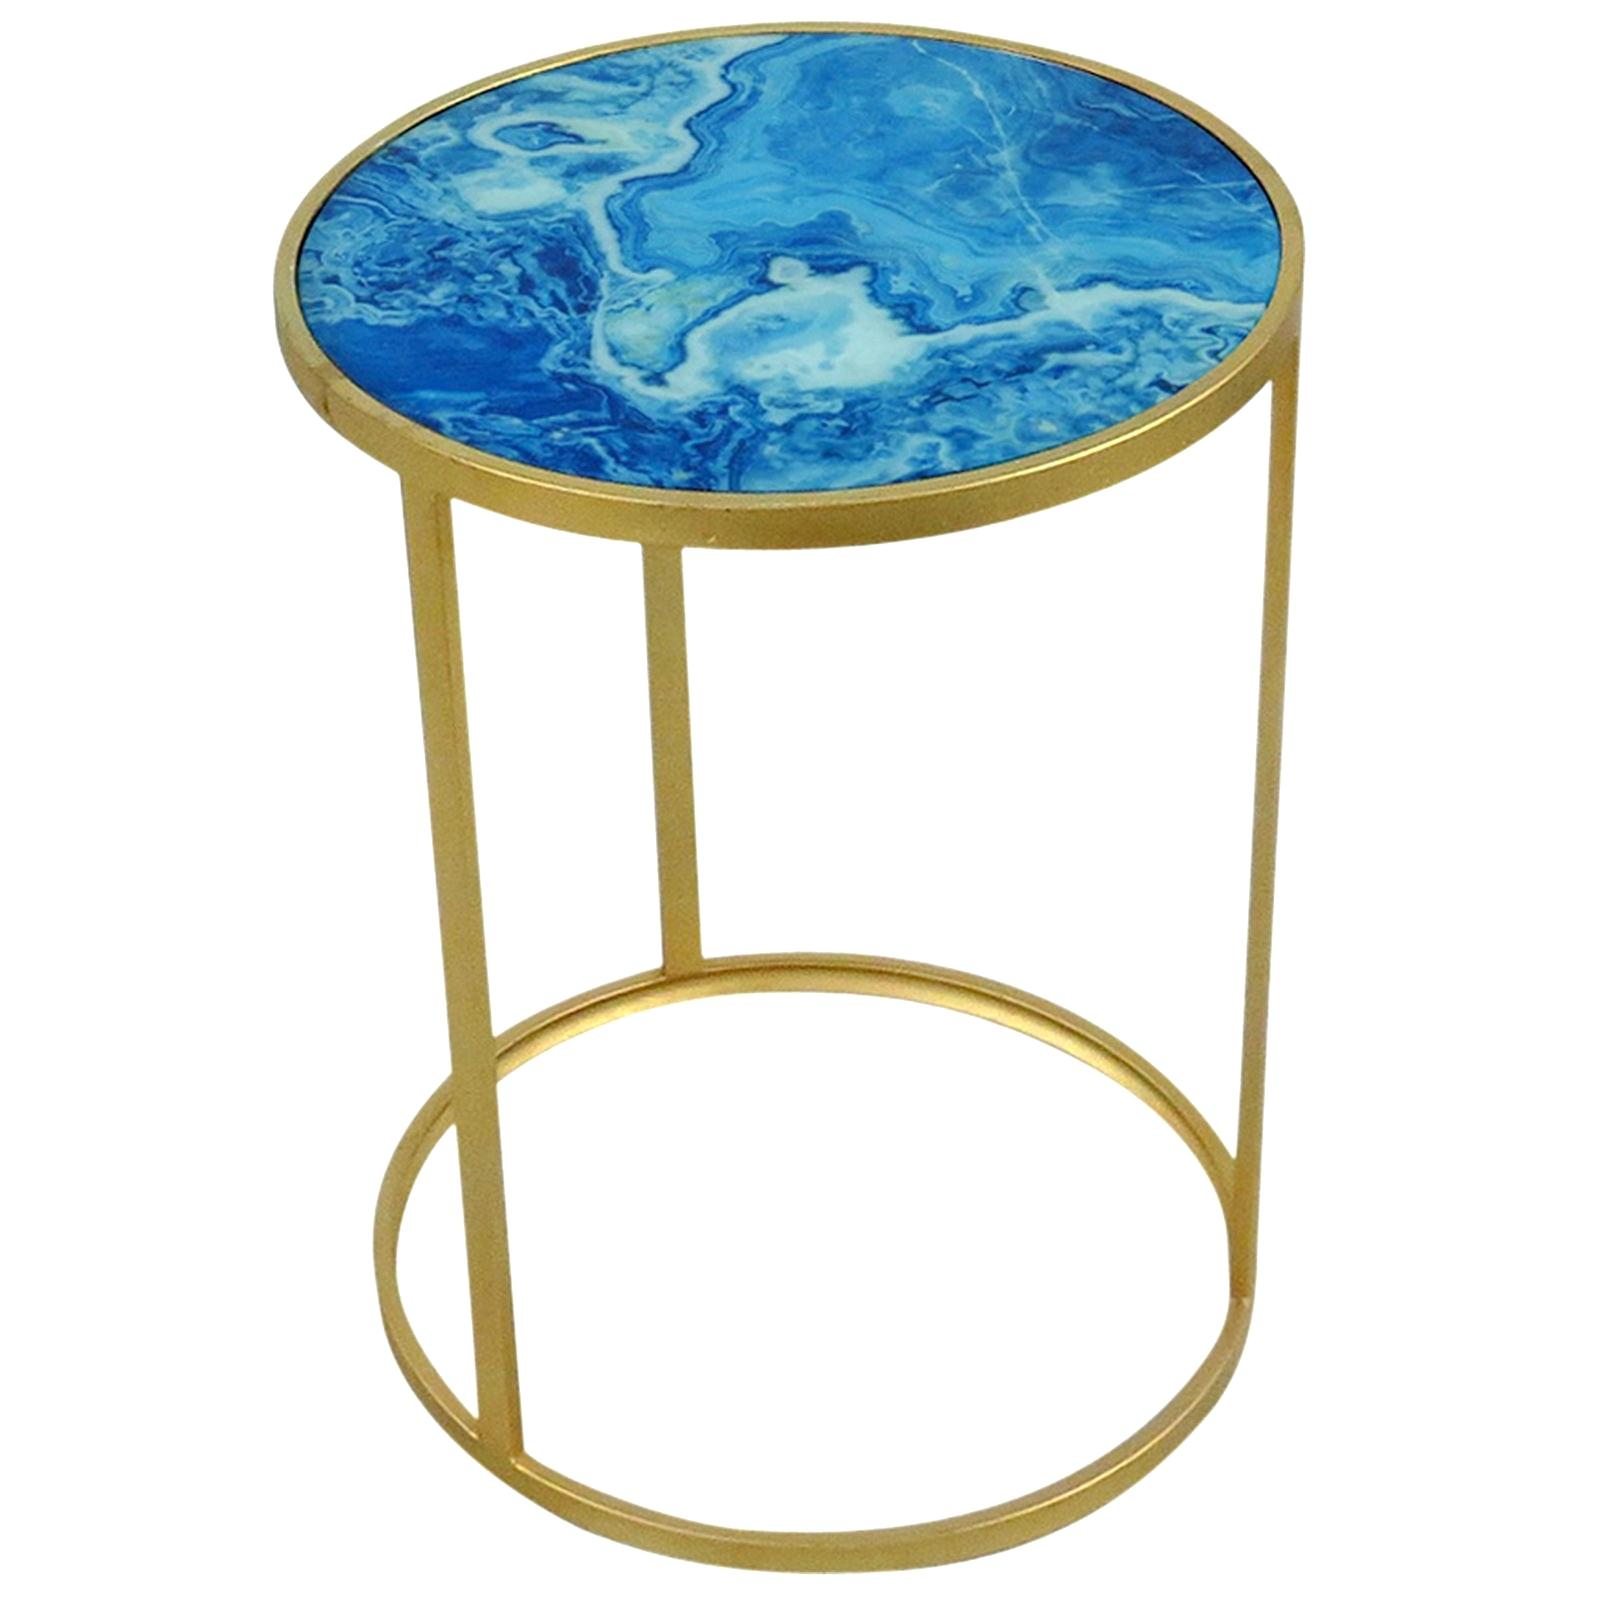 agate accent table ocane info blue small threshold glass faux tablecloth for inch round gold decorative accessories metal bedroom side tables high end vintage oak designer and